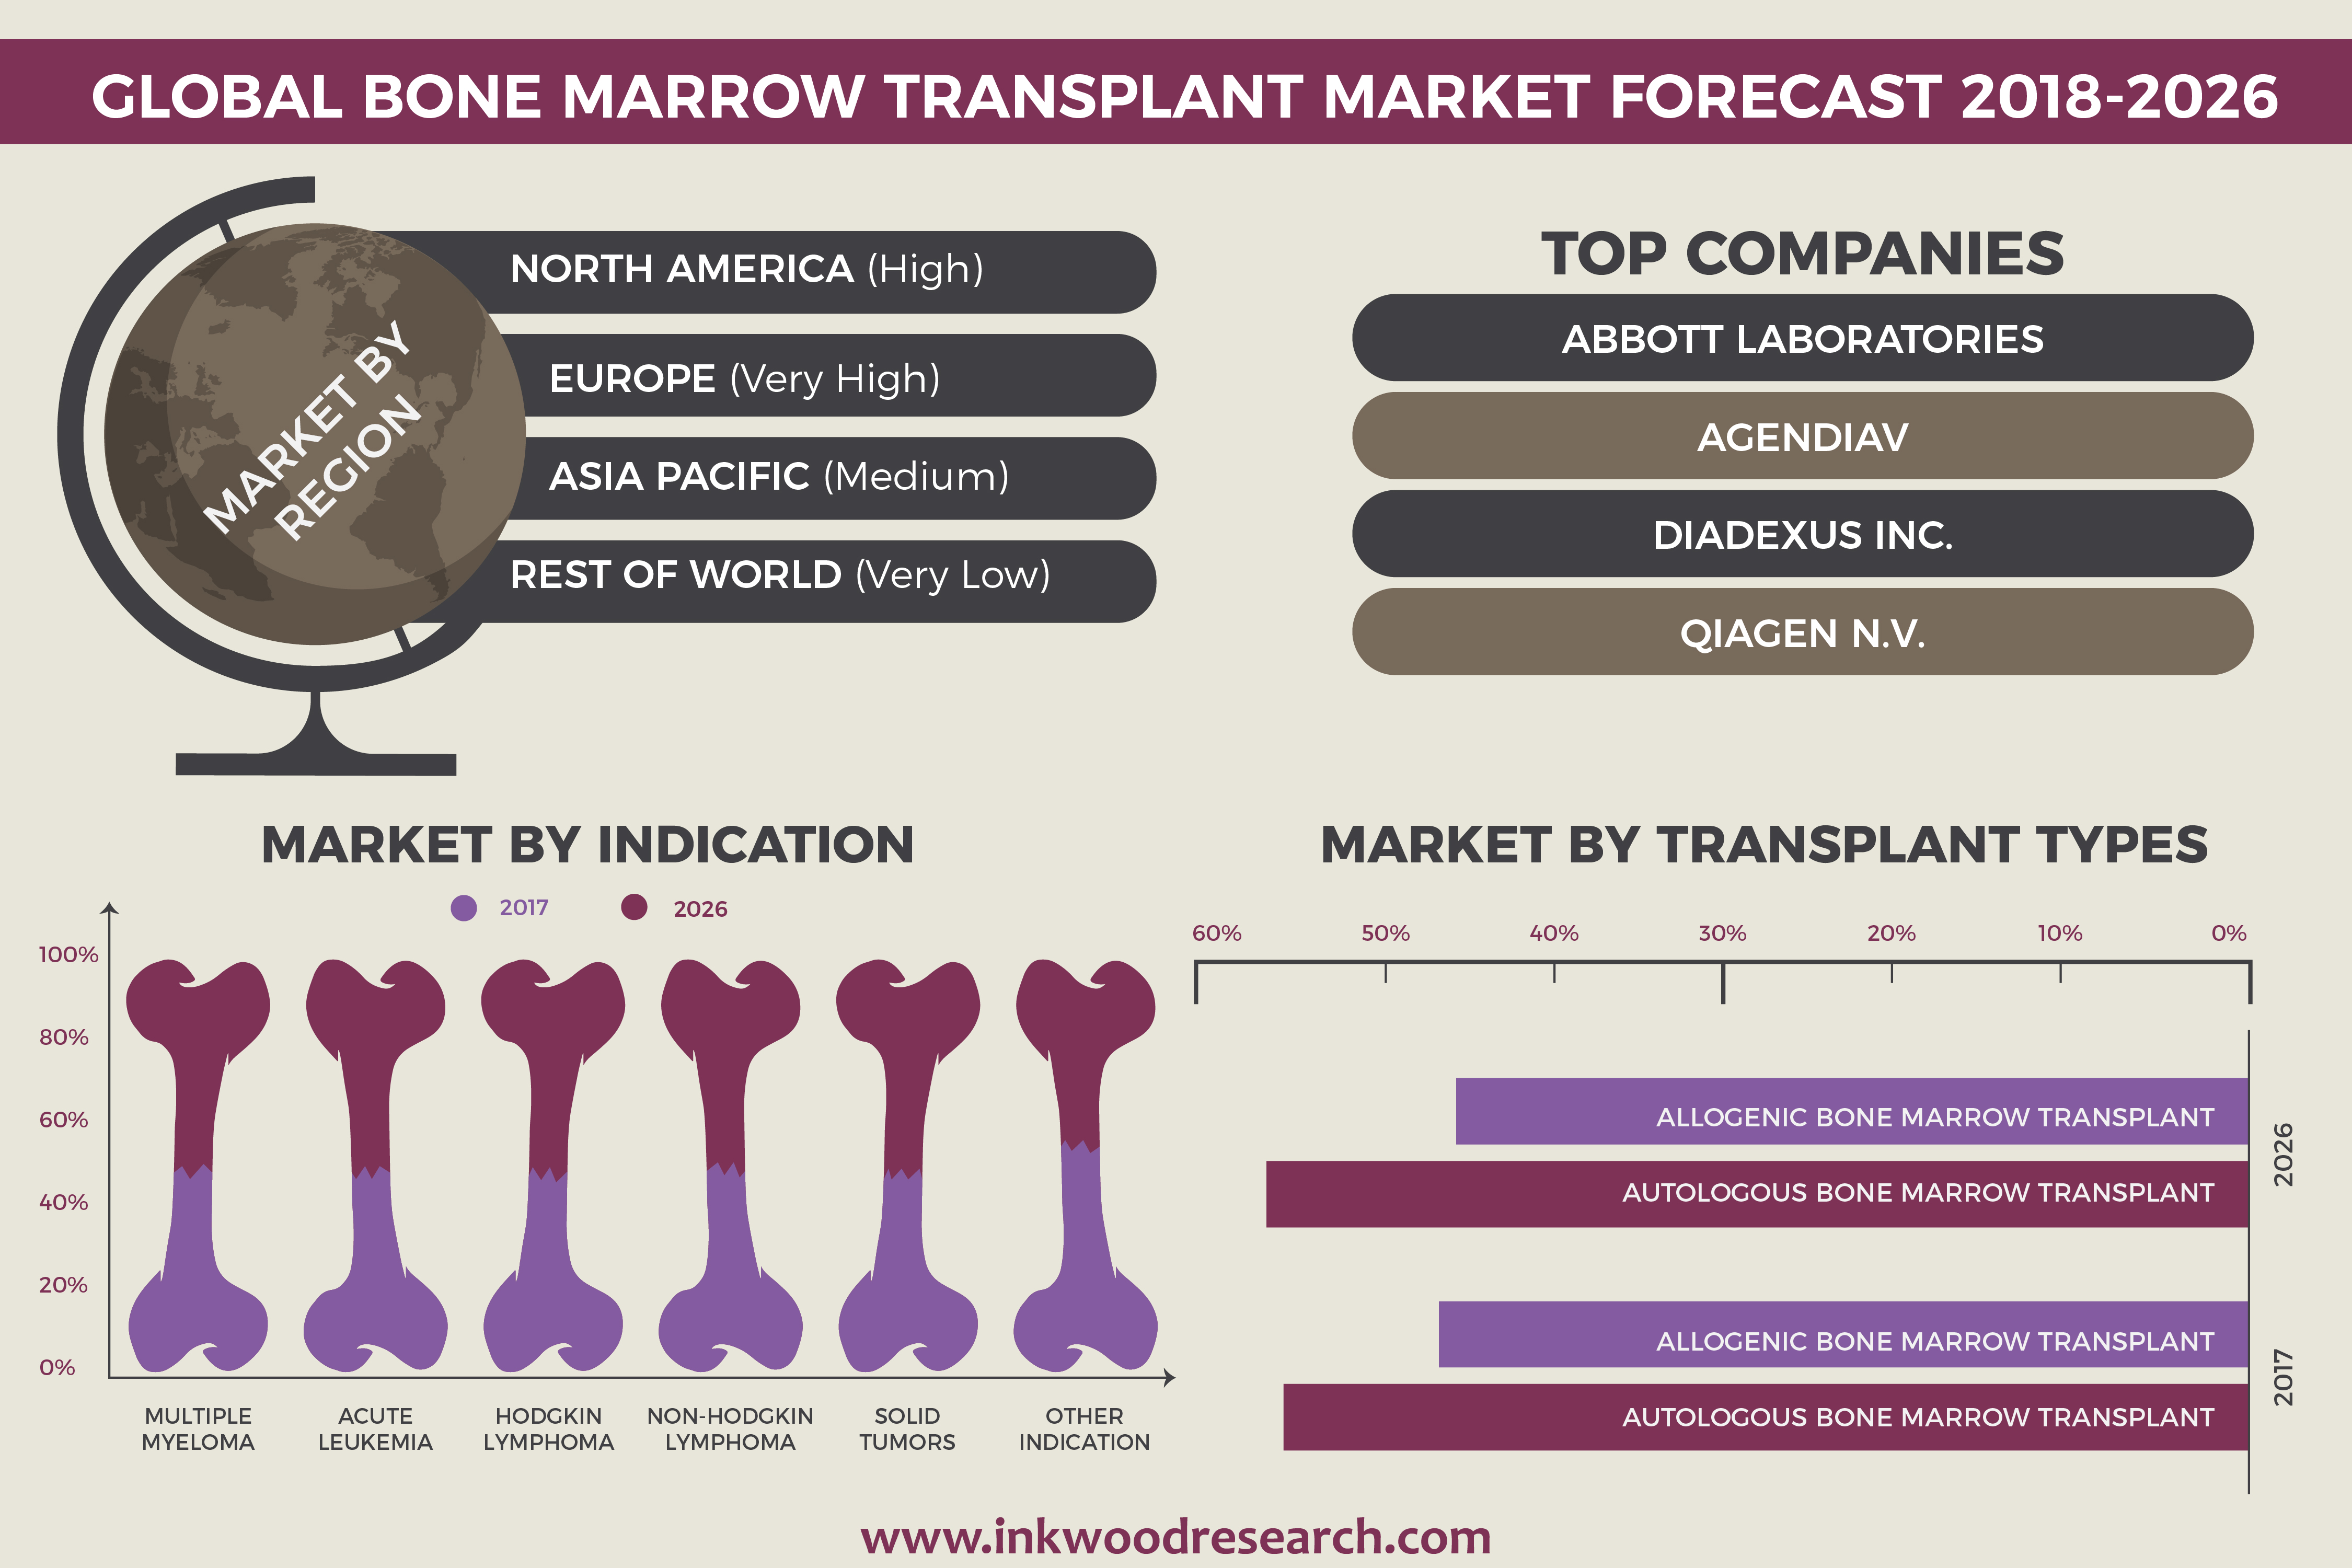 Global Bone Marrow Transplant Market to Grow at a CAGR of 5.45% by 2026 18